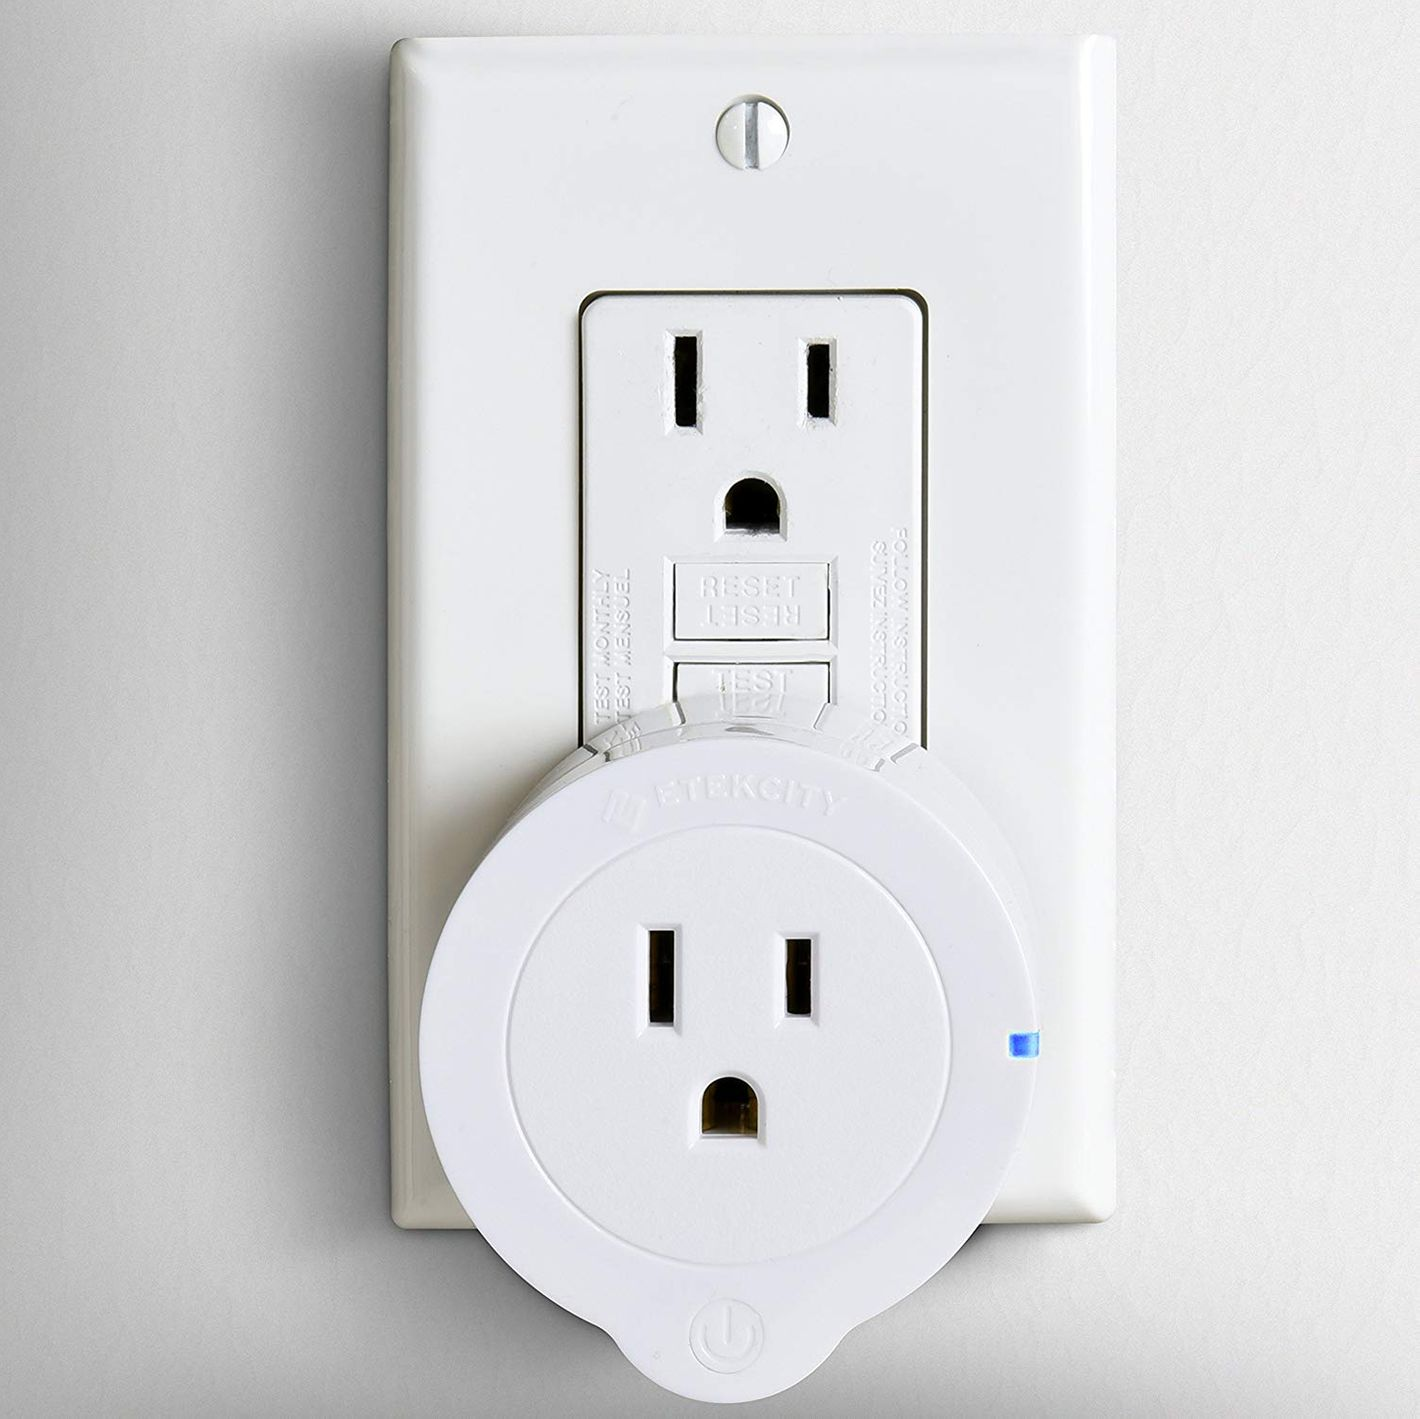 Etekcity WiFi Smart Plug (4-Pack)